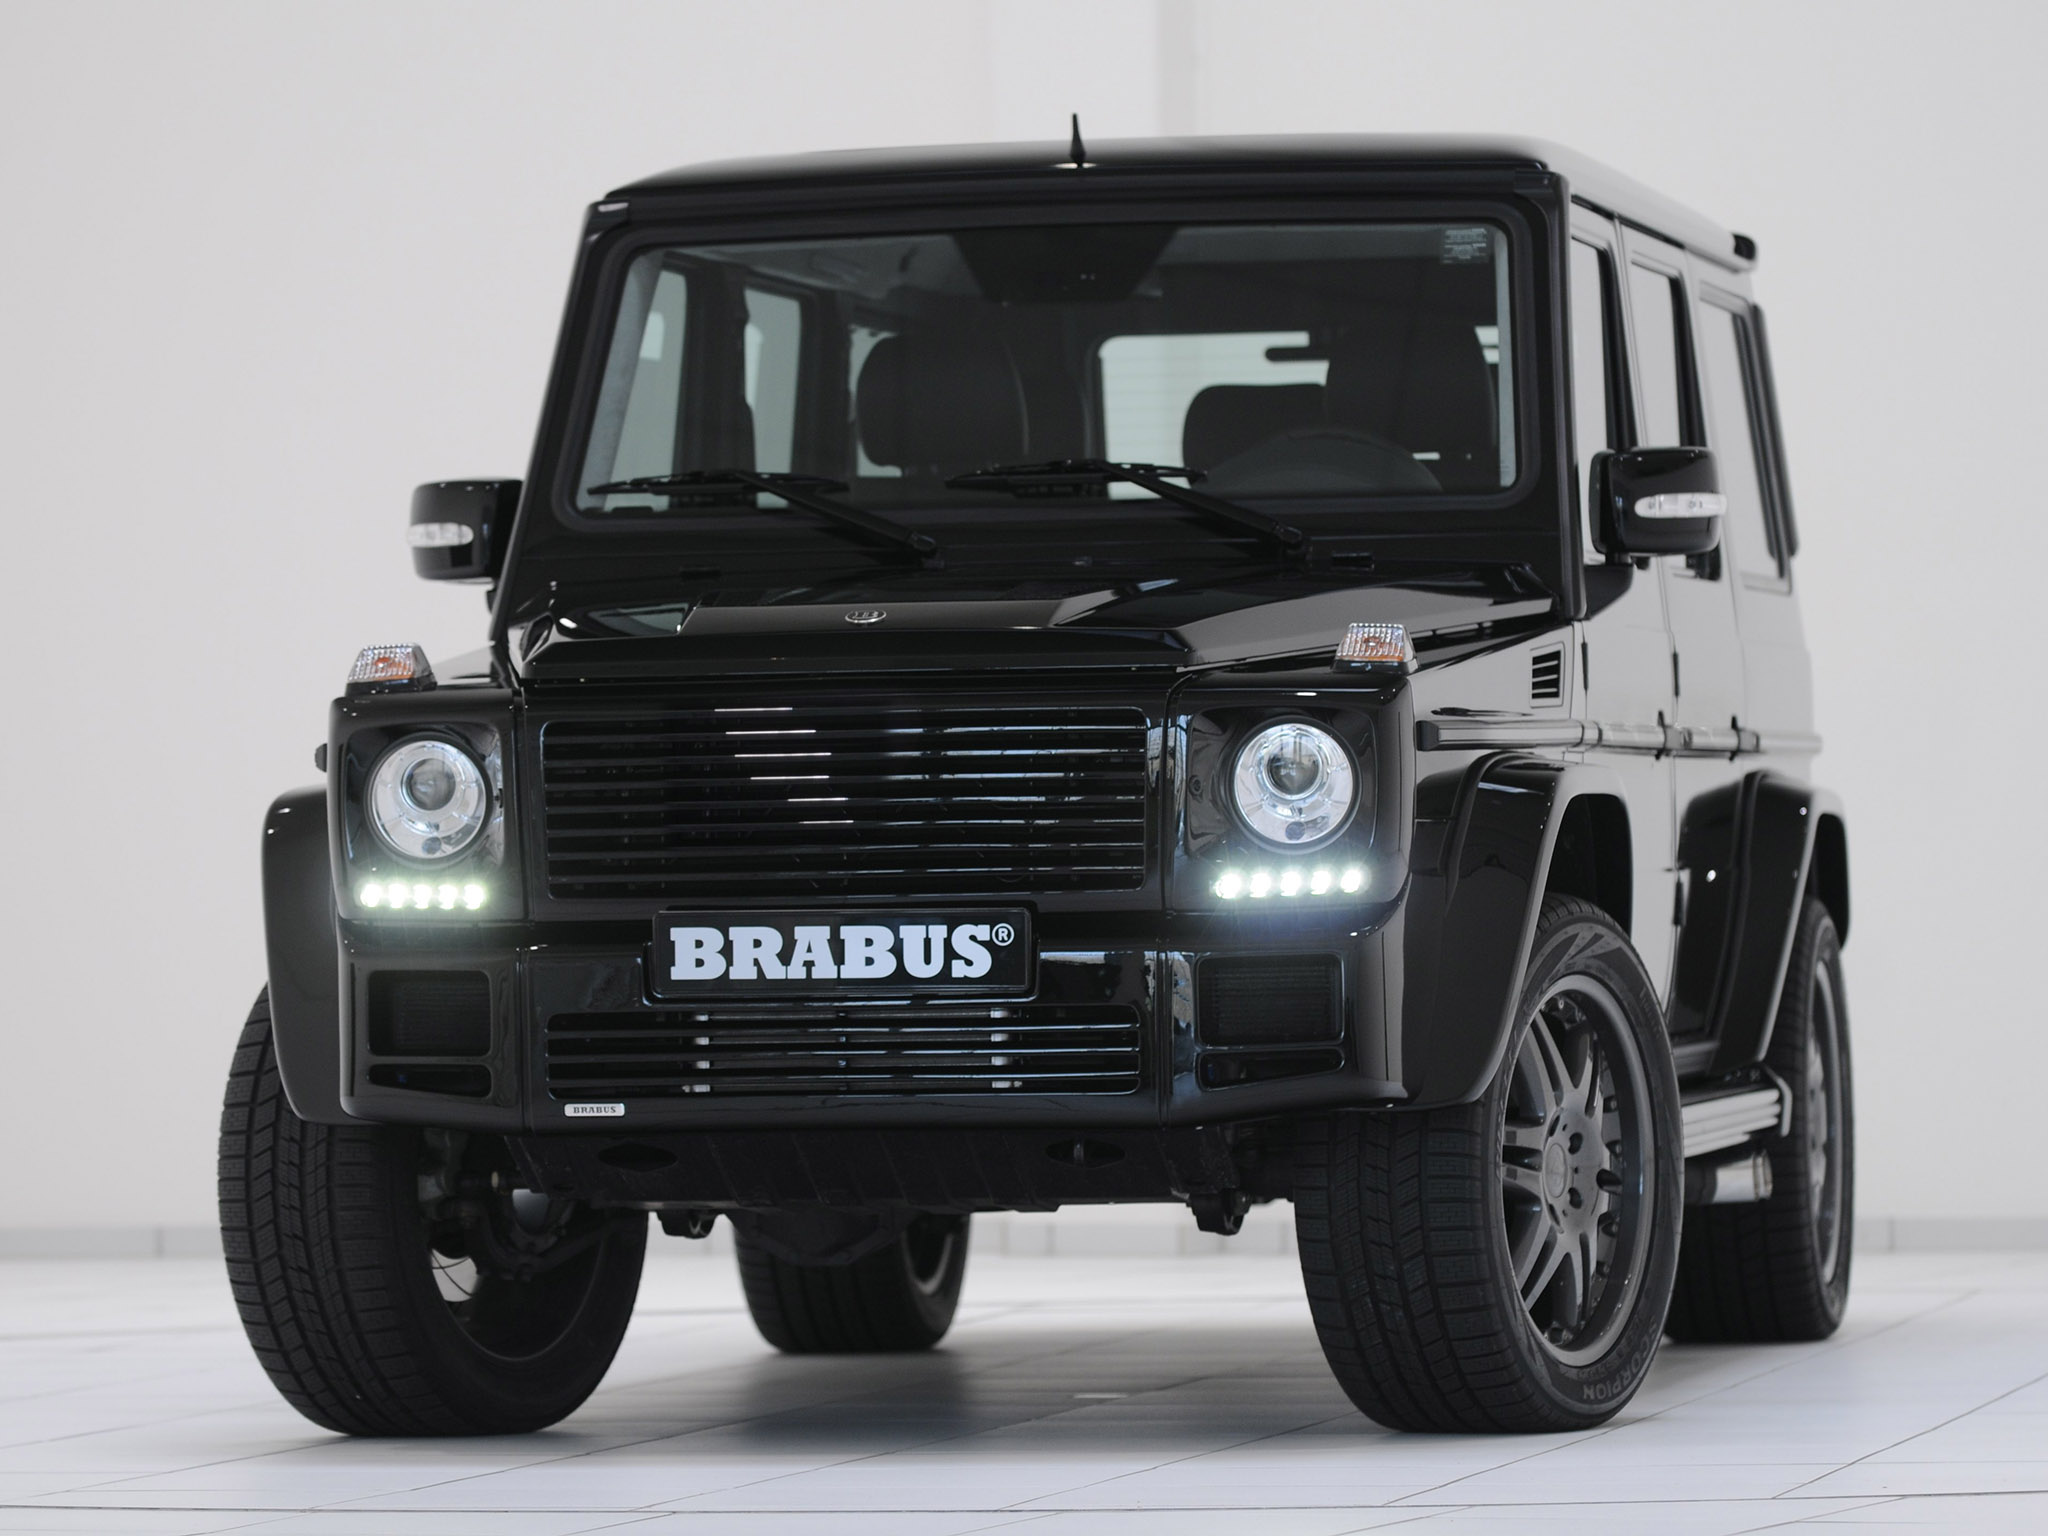 brabus mercedes g klasse v12 s biturbo 2009 brabus. Black Bedroom Furniture Sets. Home Design Ideas